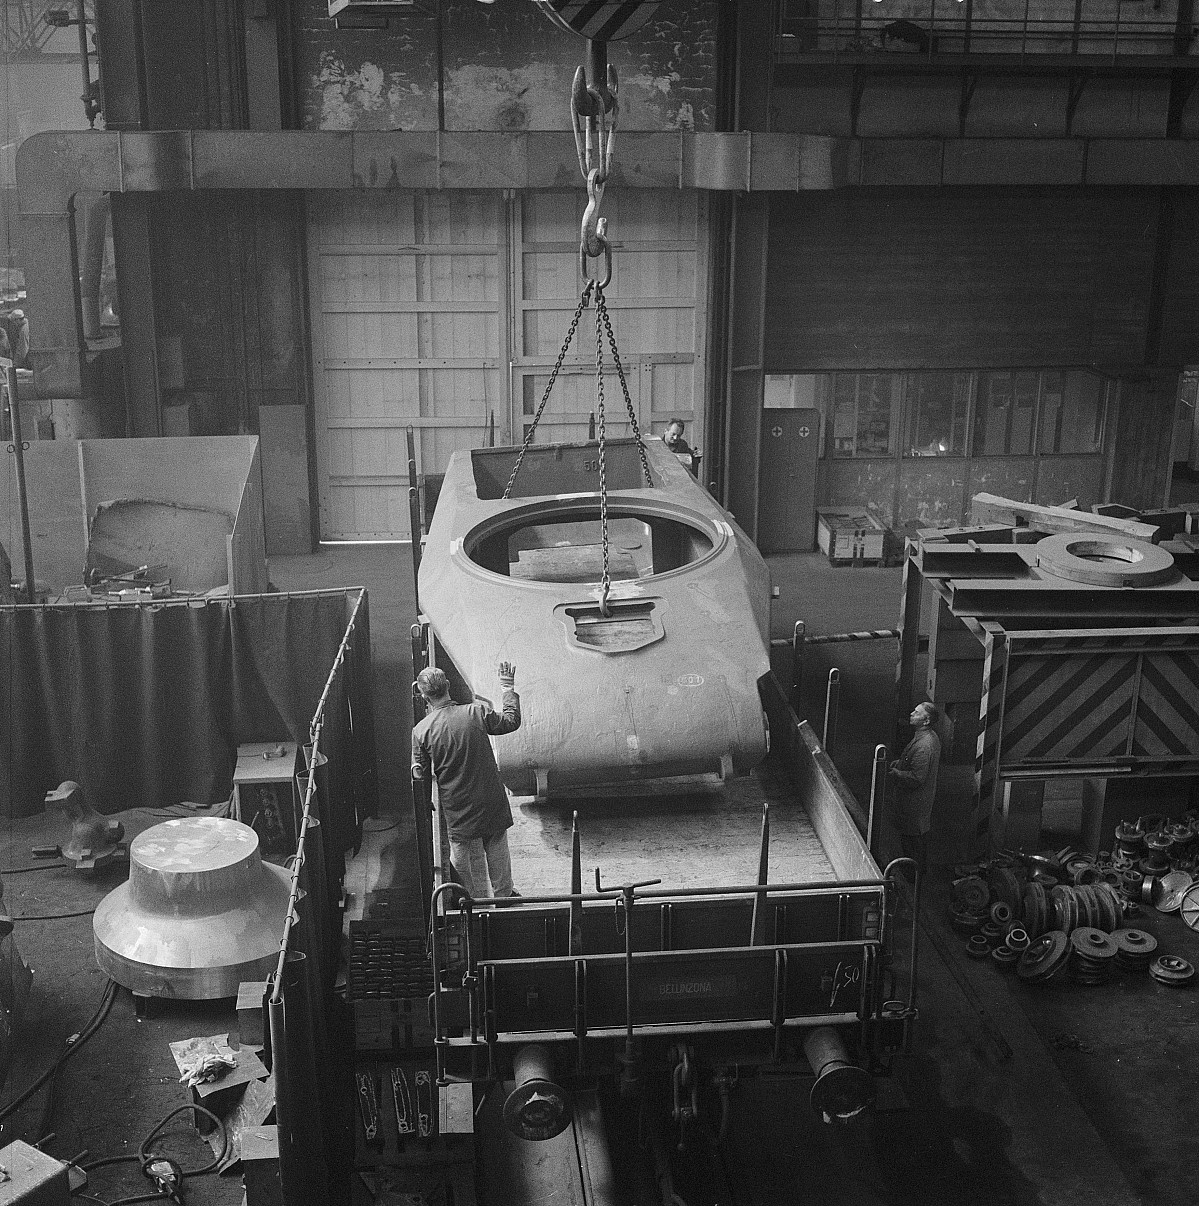 GFA 17/690642.4: Loading of a armoured tank in the steel foundry